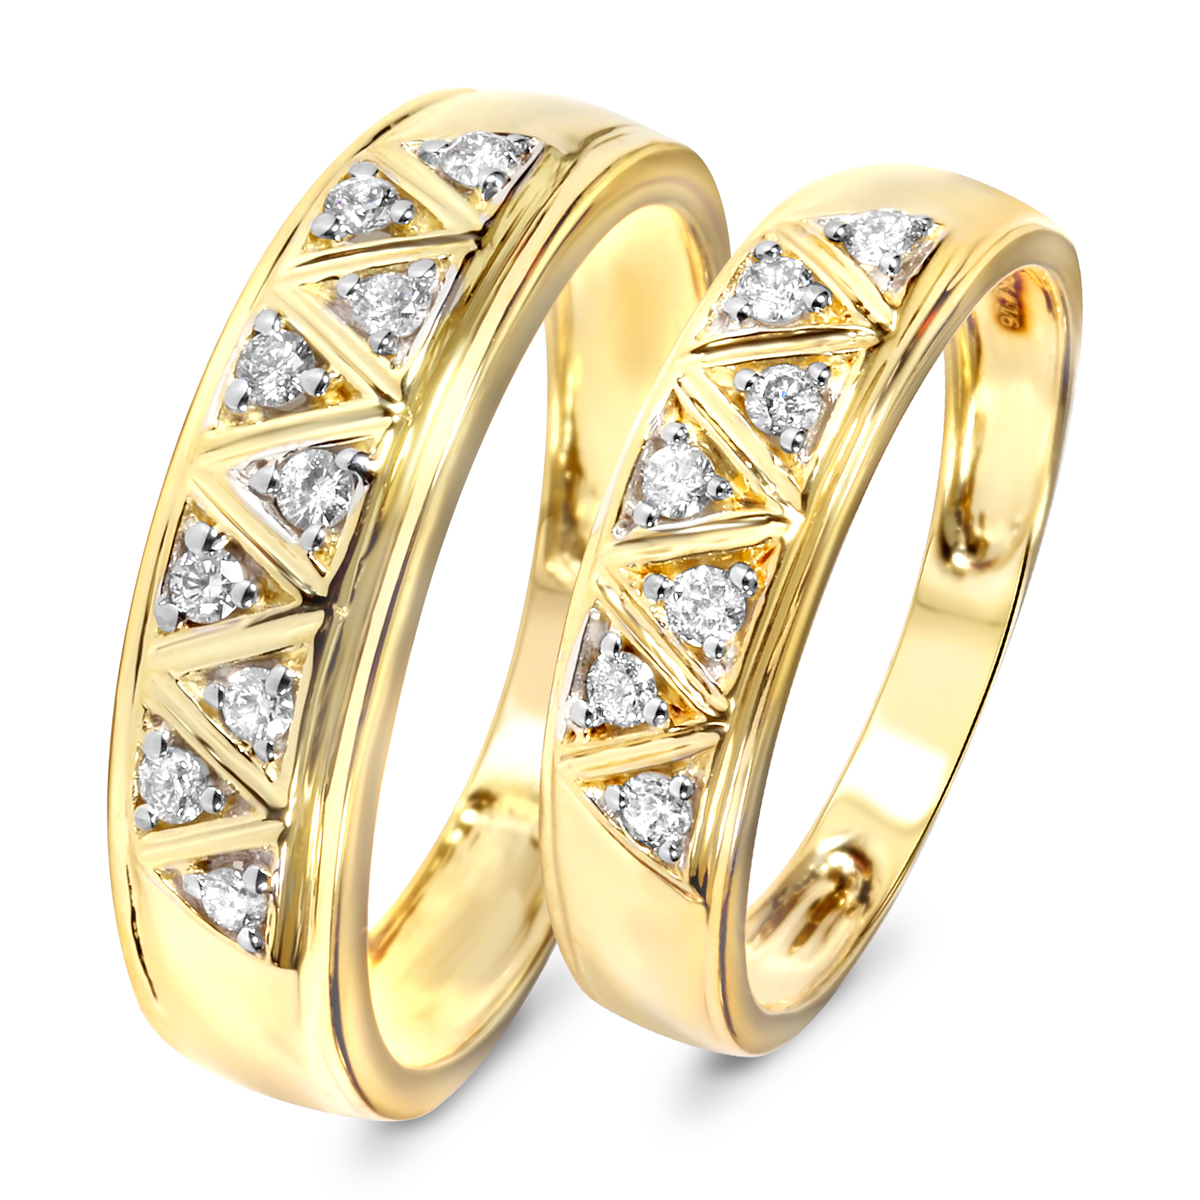 1 3 Carat T W Diamond His And Hers Wedding Band Set 14k Yellow Gold